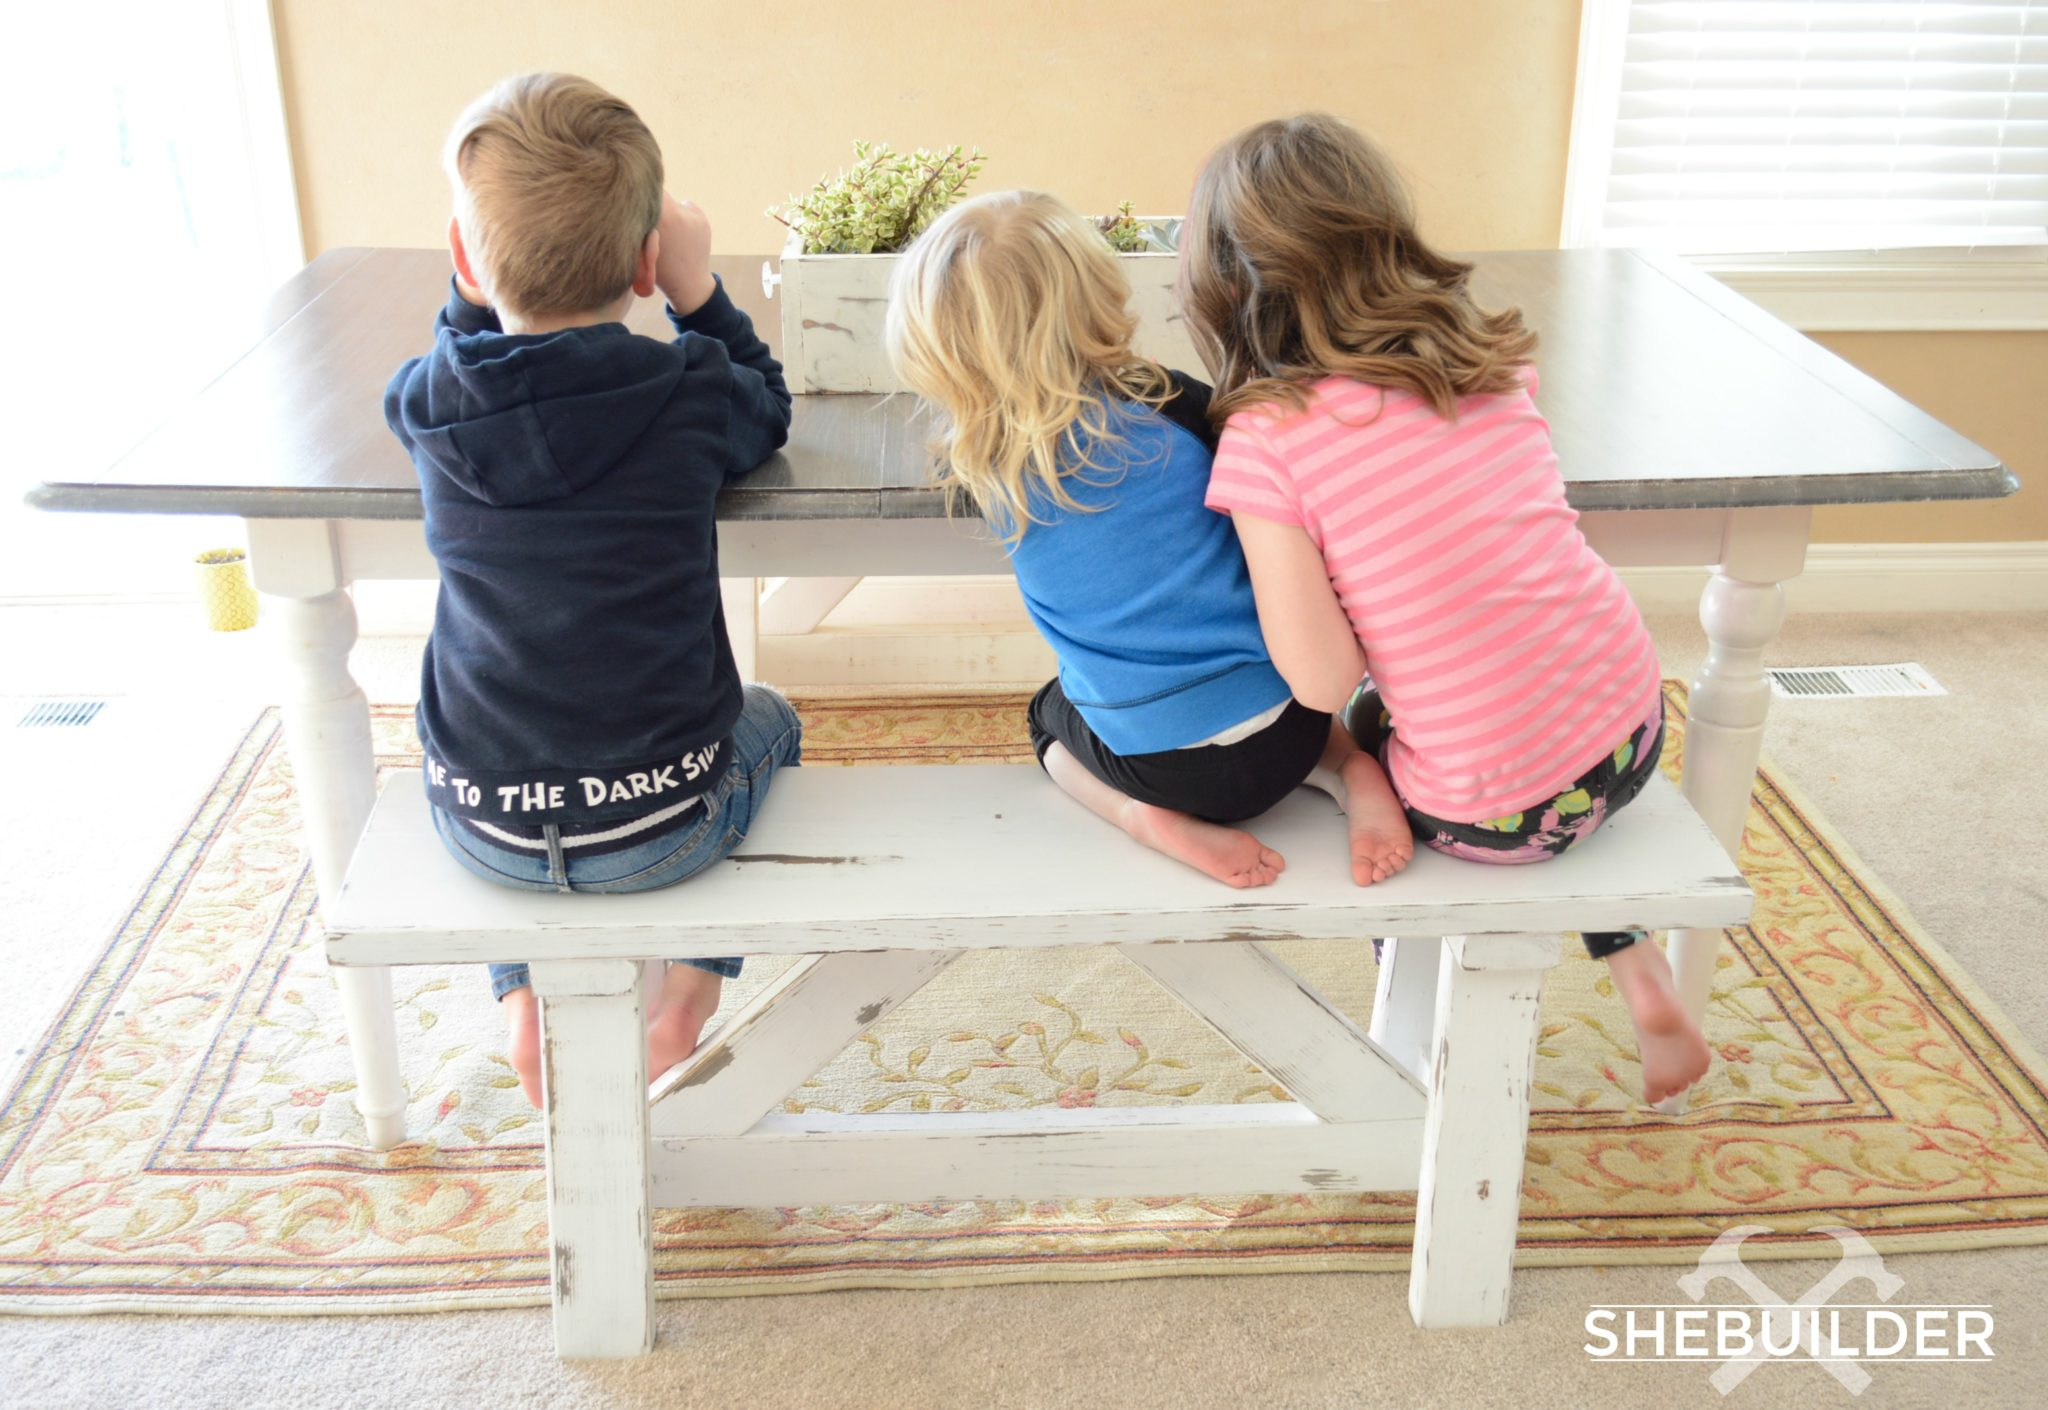 3 Kids Sitting on Farmhouse Bench at Kitchen Table